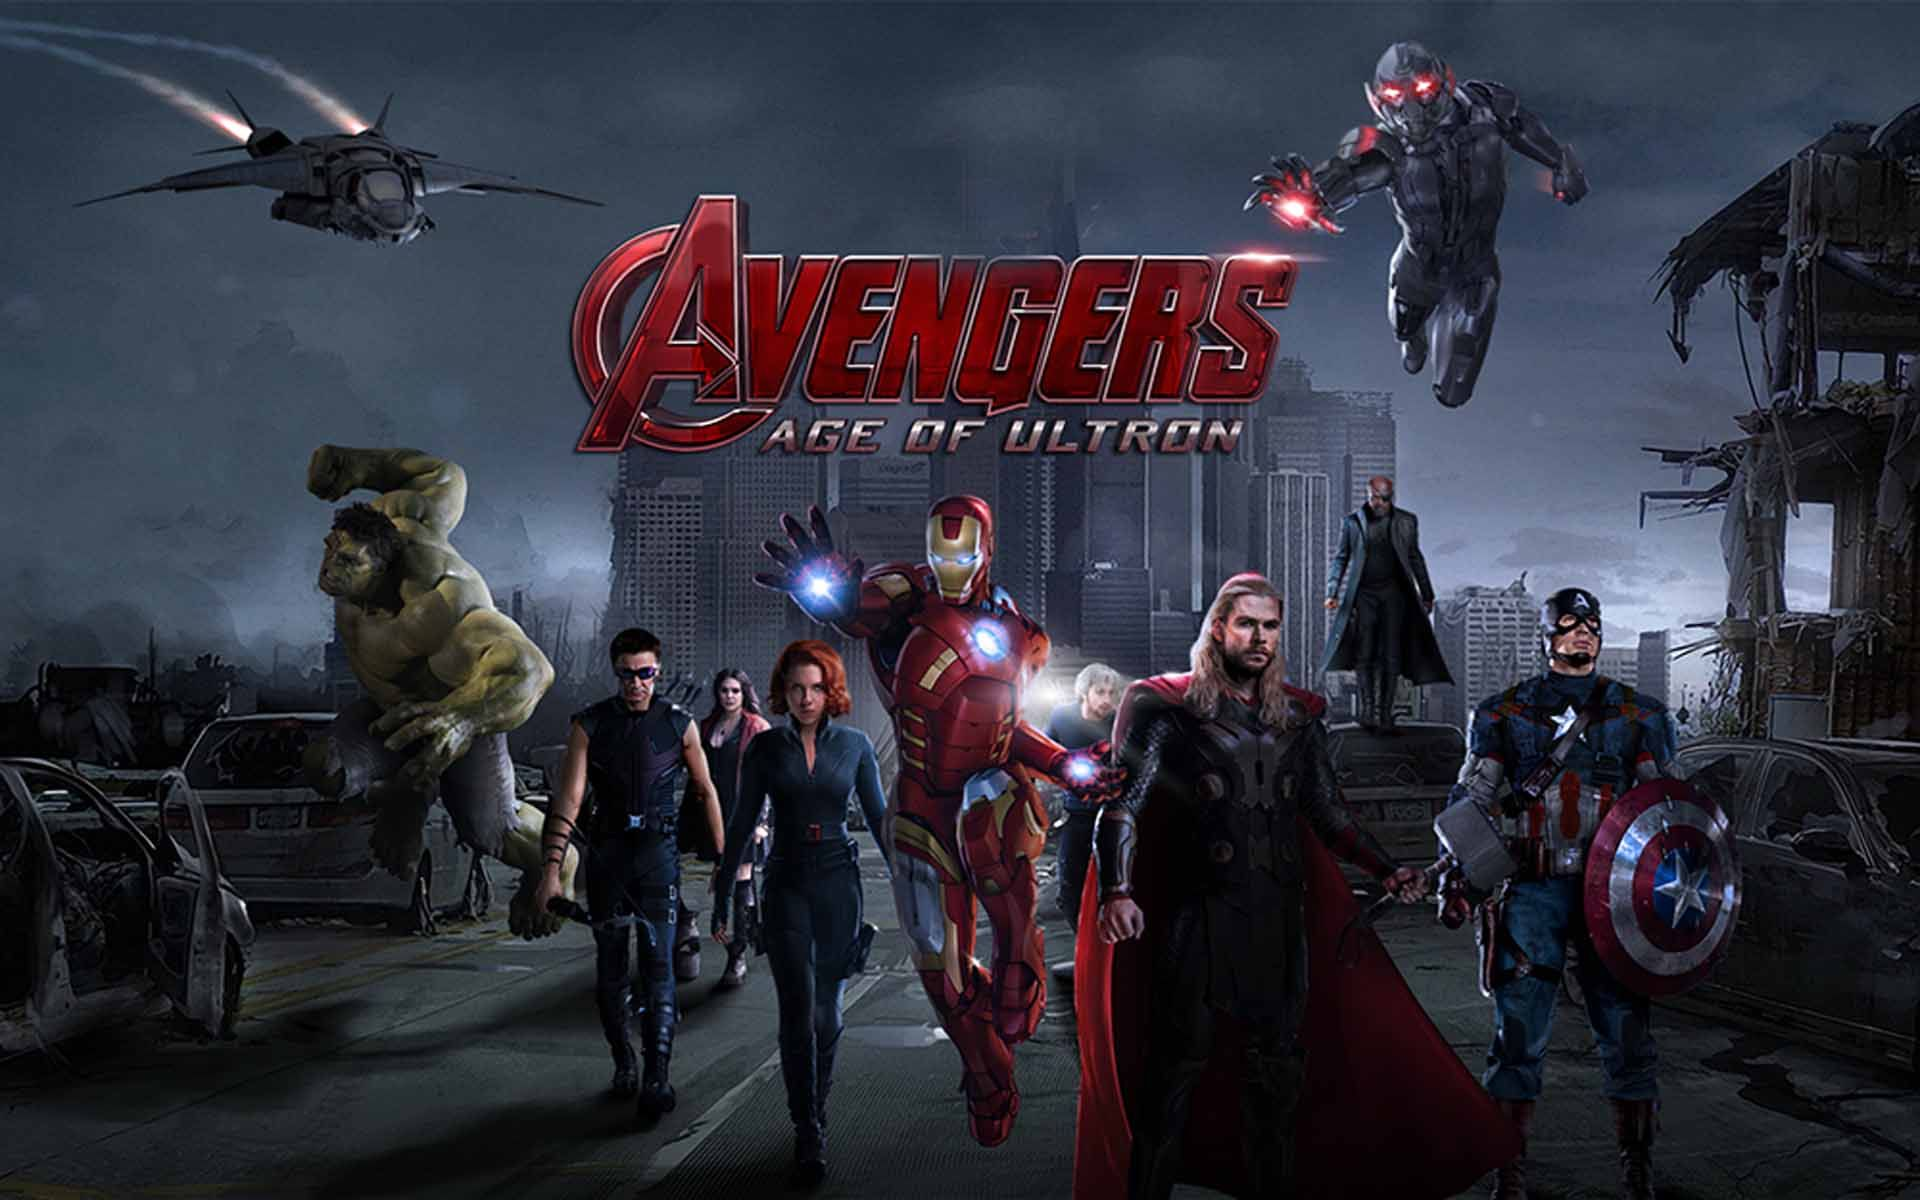 Avengers age of ultron latest hd wallpapers free download avengers age of ultron latest hd wallpapers free download voltagebd Choice Image